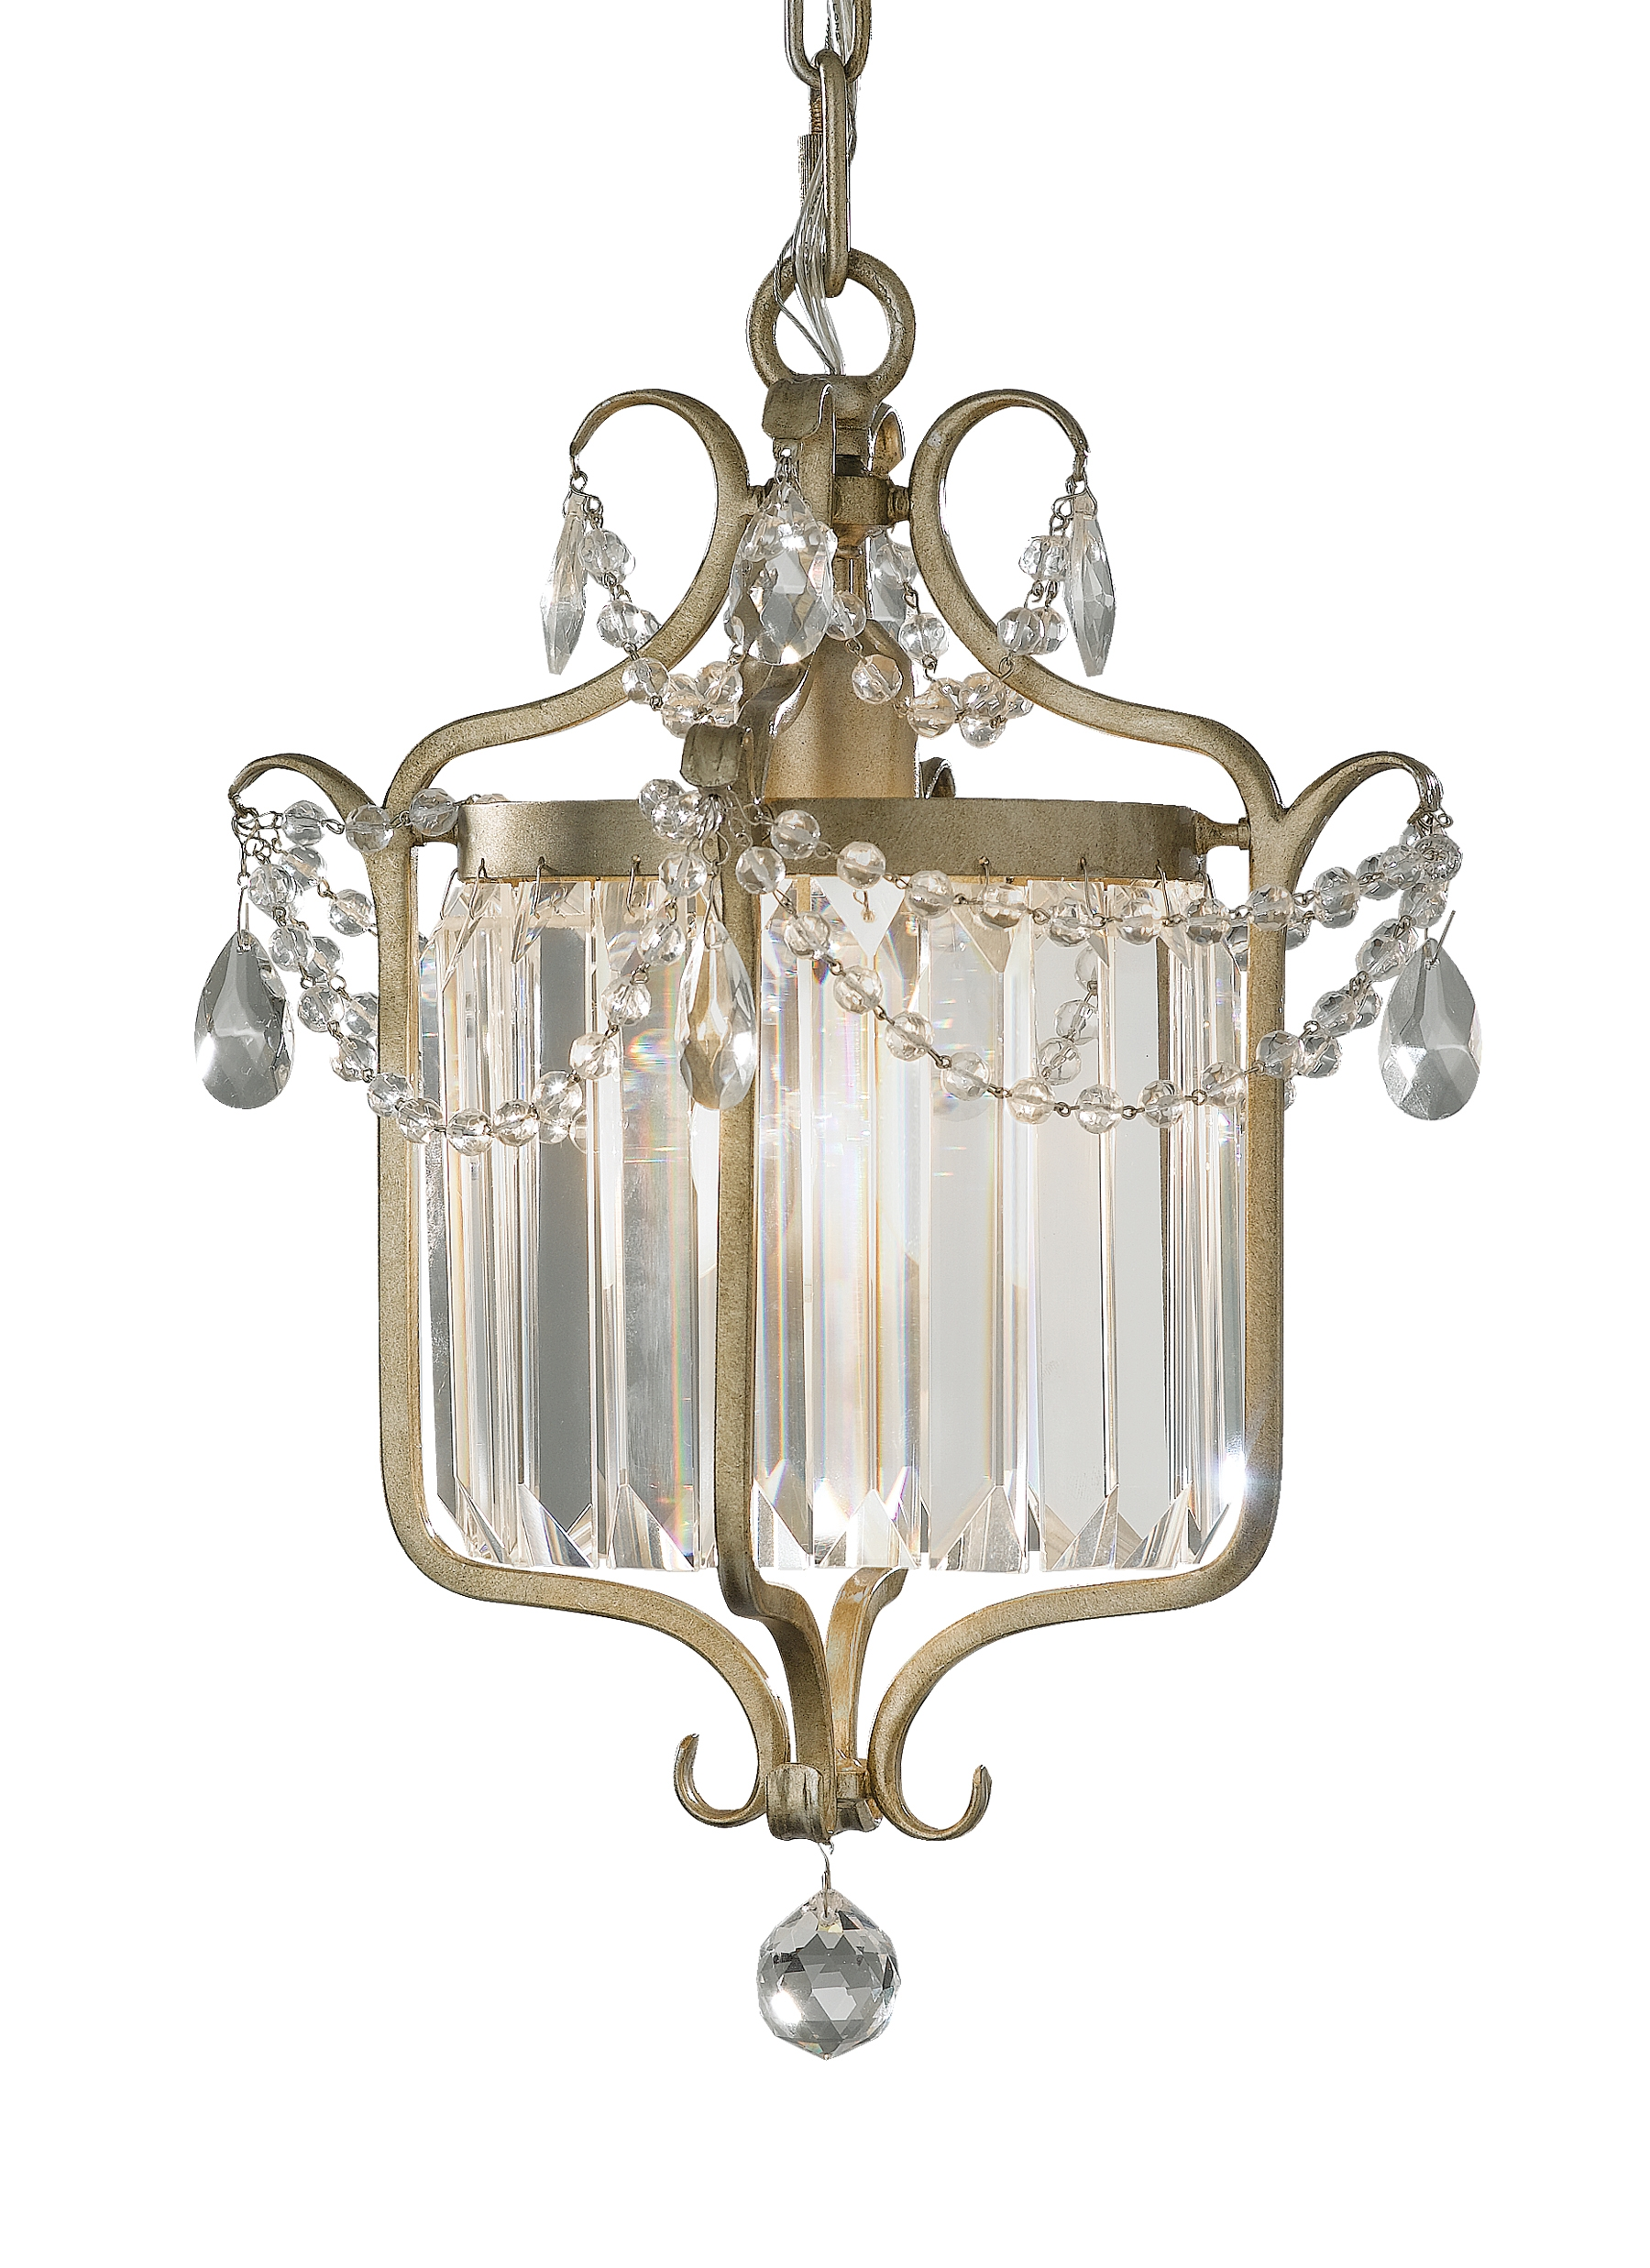 Gianna From Feiss For Gianna Mini Chandeliers (Image 15 of 25)